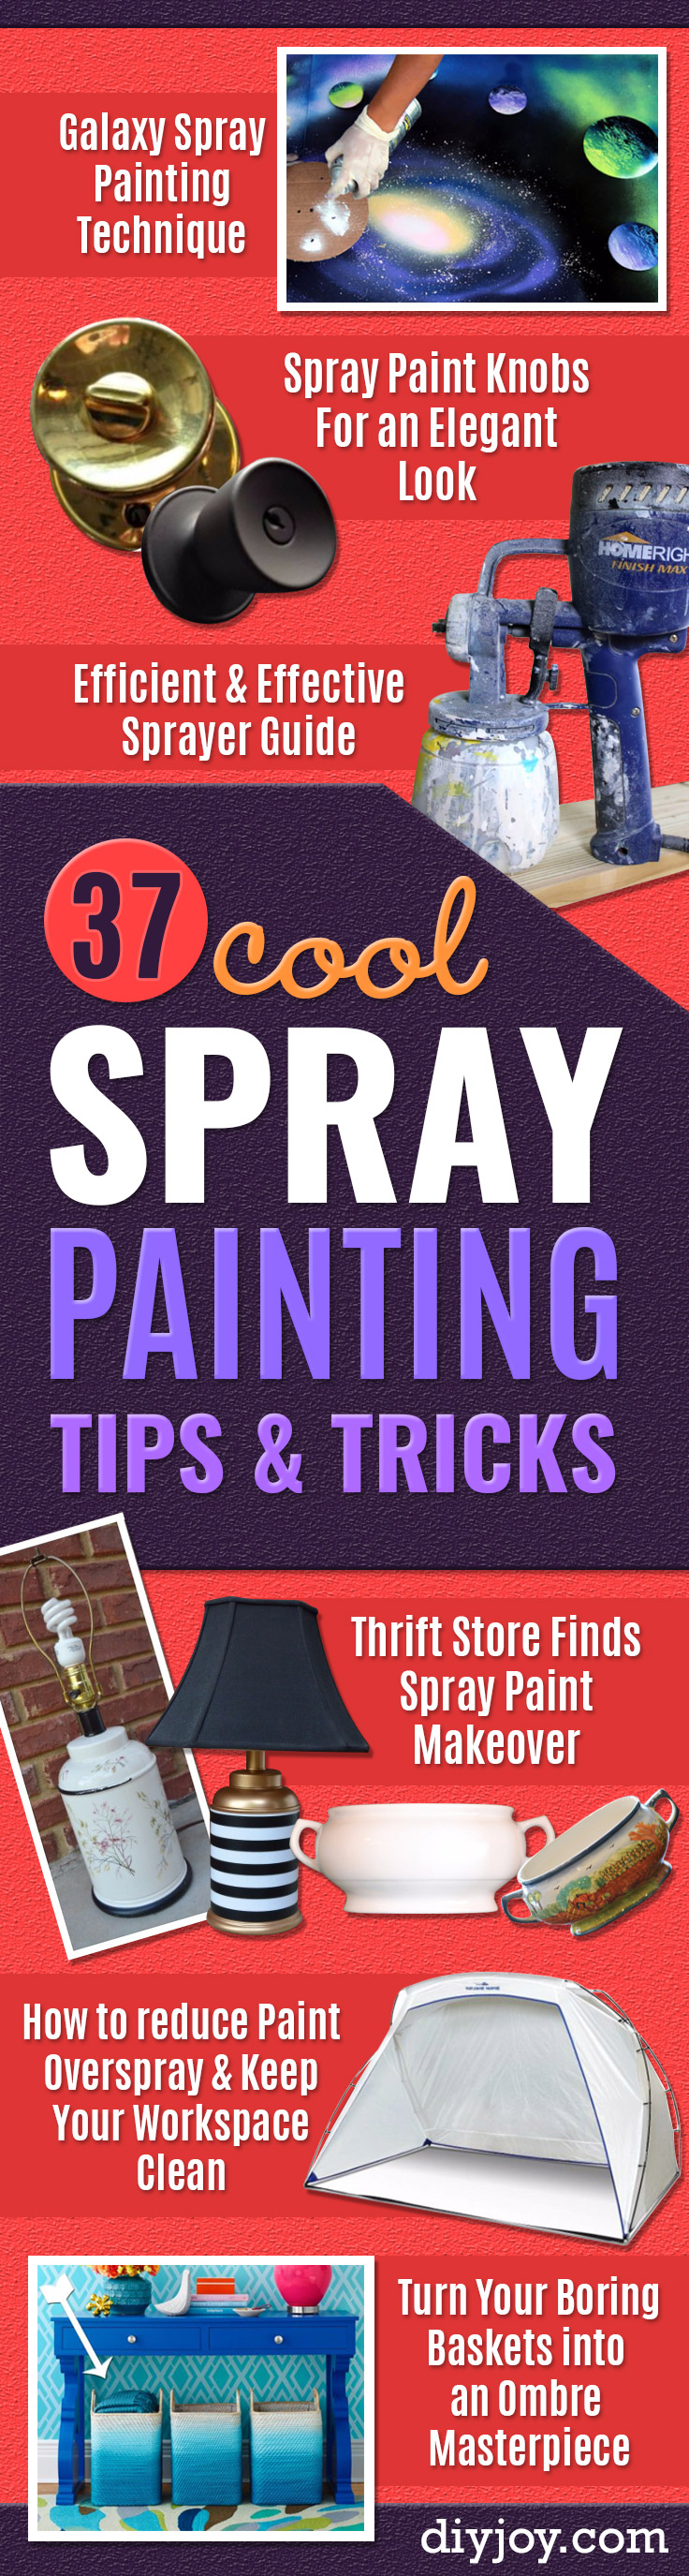 37 Spray Painting Tips From The Pros